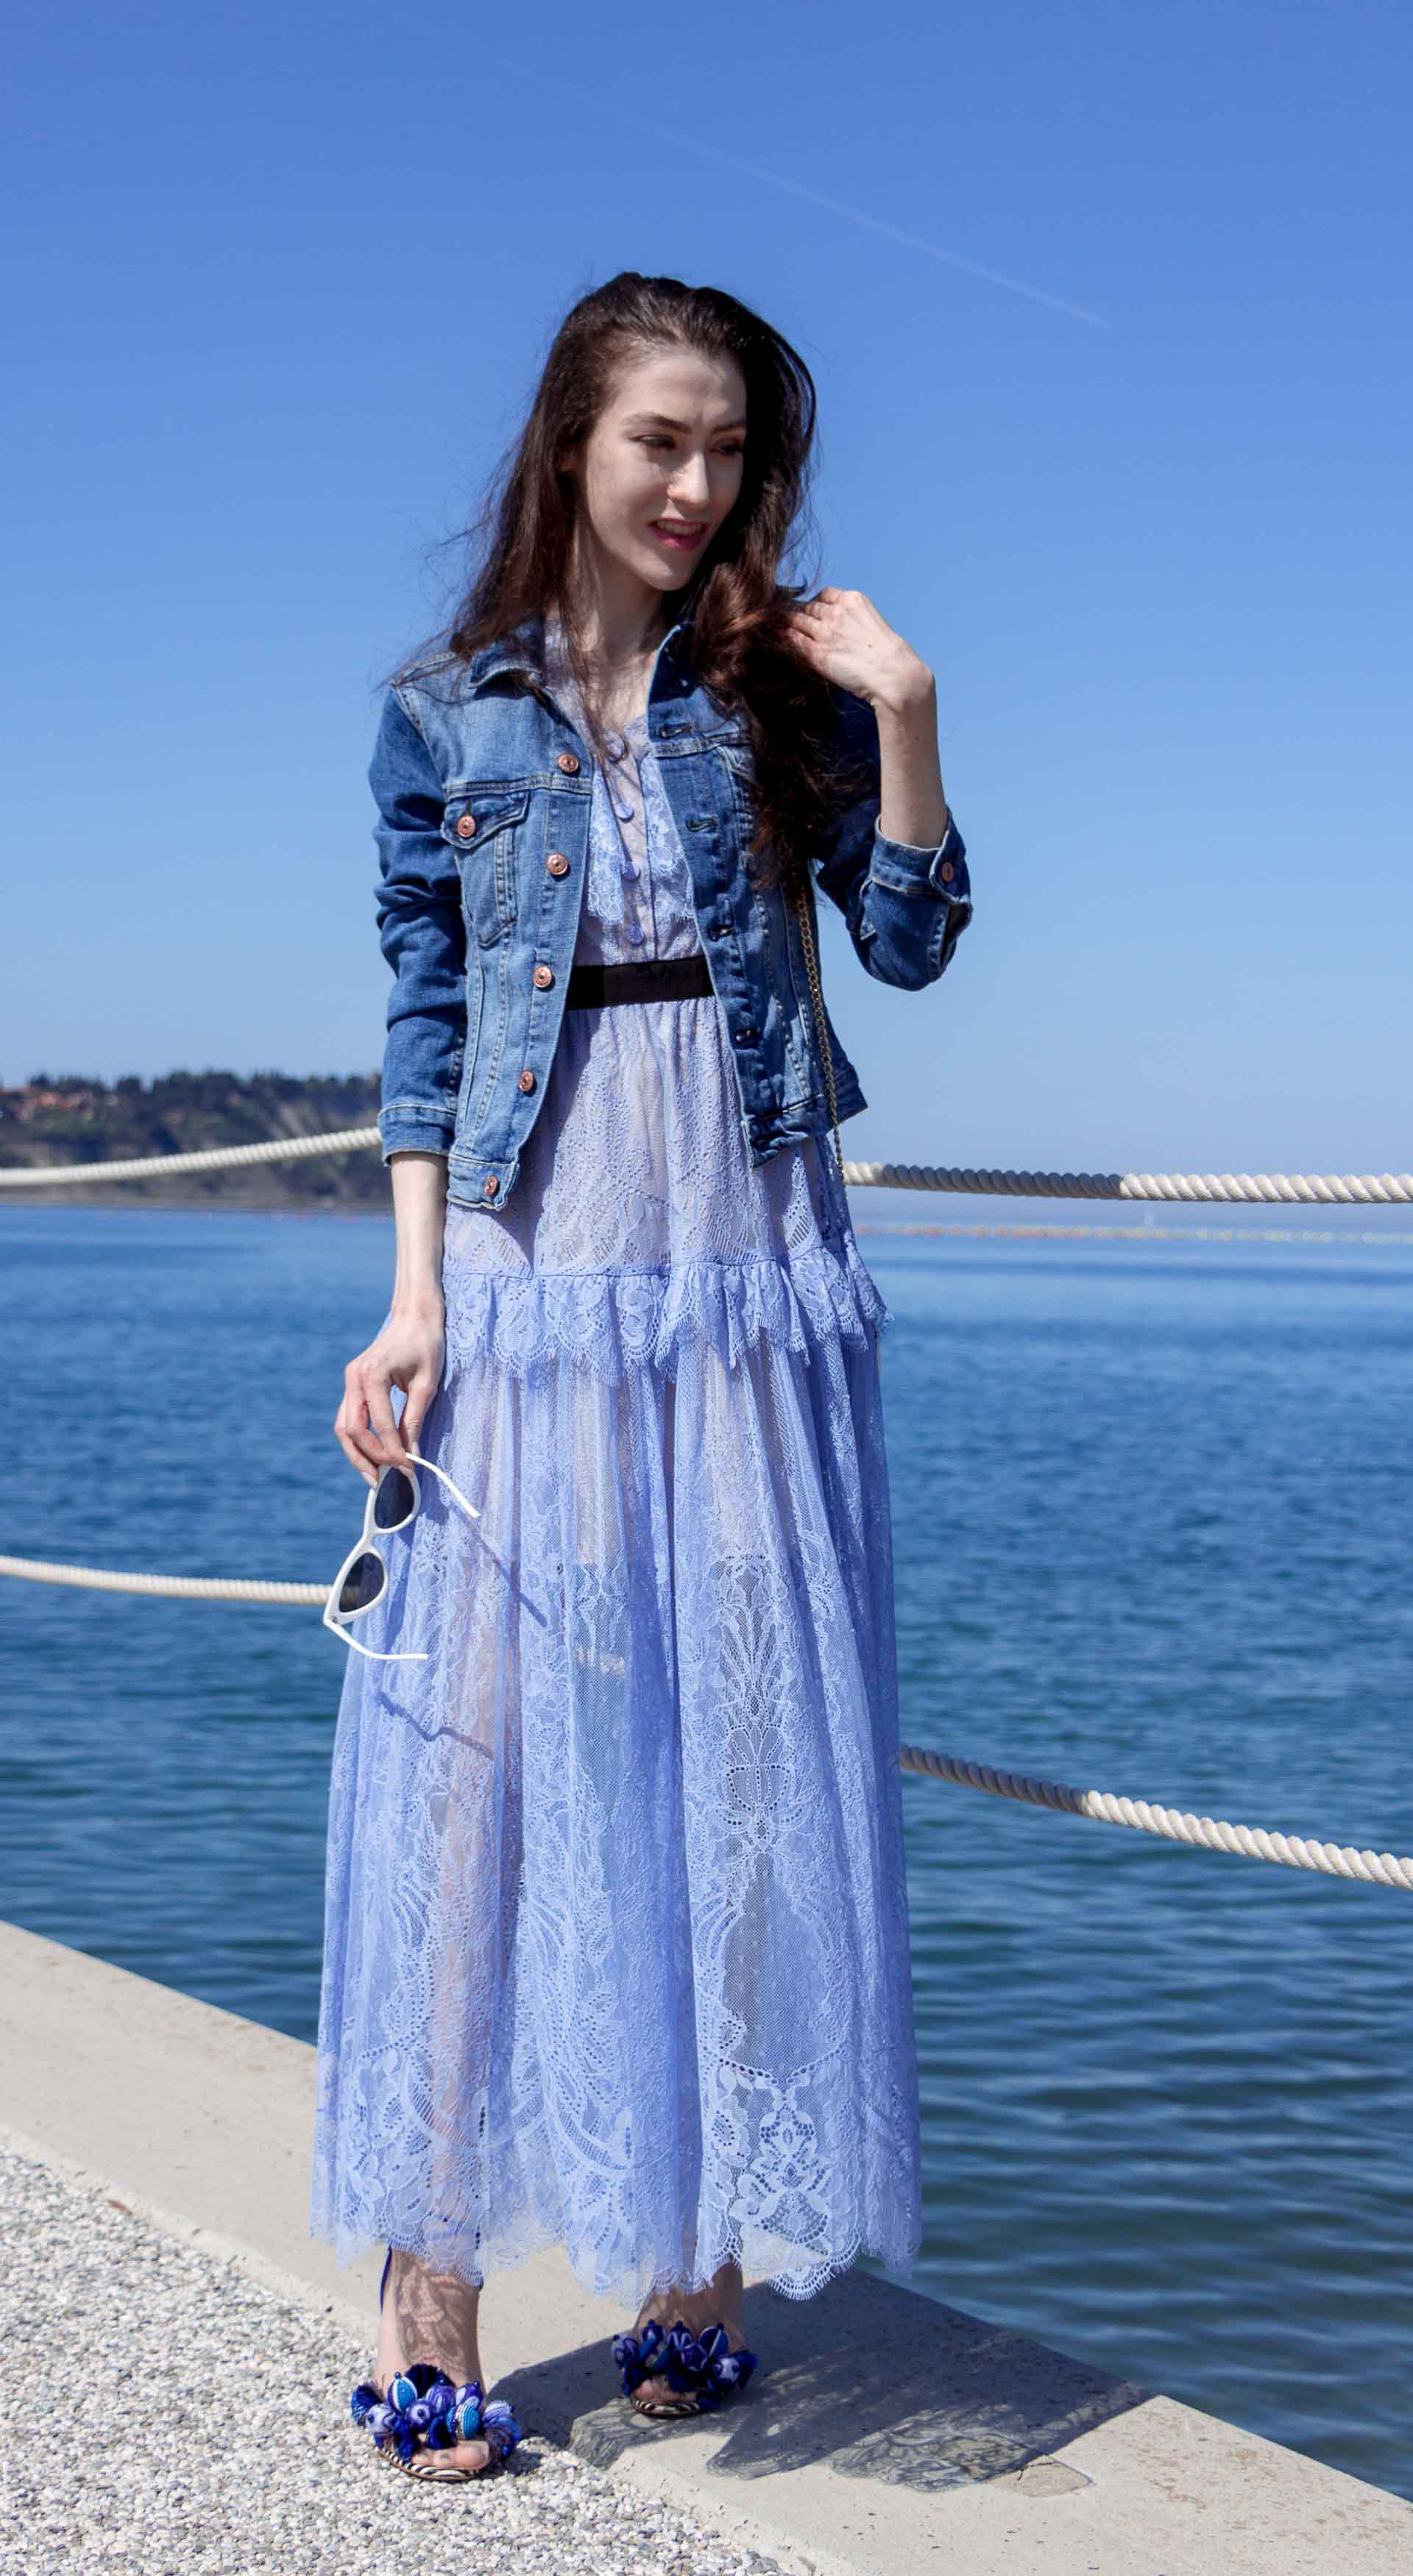 Veronika Lipar Fashion Blogger of Brunette from Wall Street wearing blue off the shoulder midi lace dress from Self-Portrait, H&M blue denim jacket, white chain shoulder bag, Aquazzura blue pom pom tassels sandals, white Lolita cat-eye sunglasses for romantic summer date